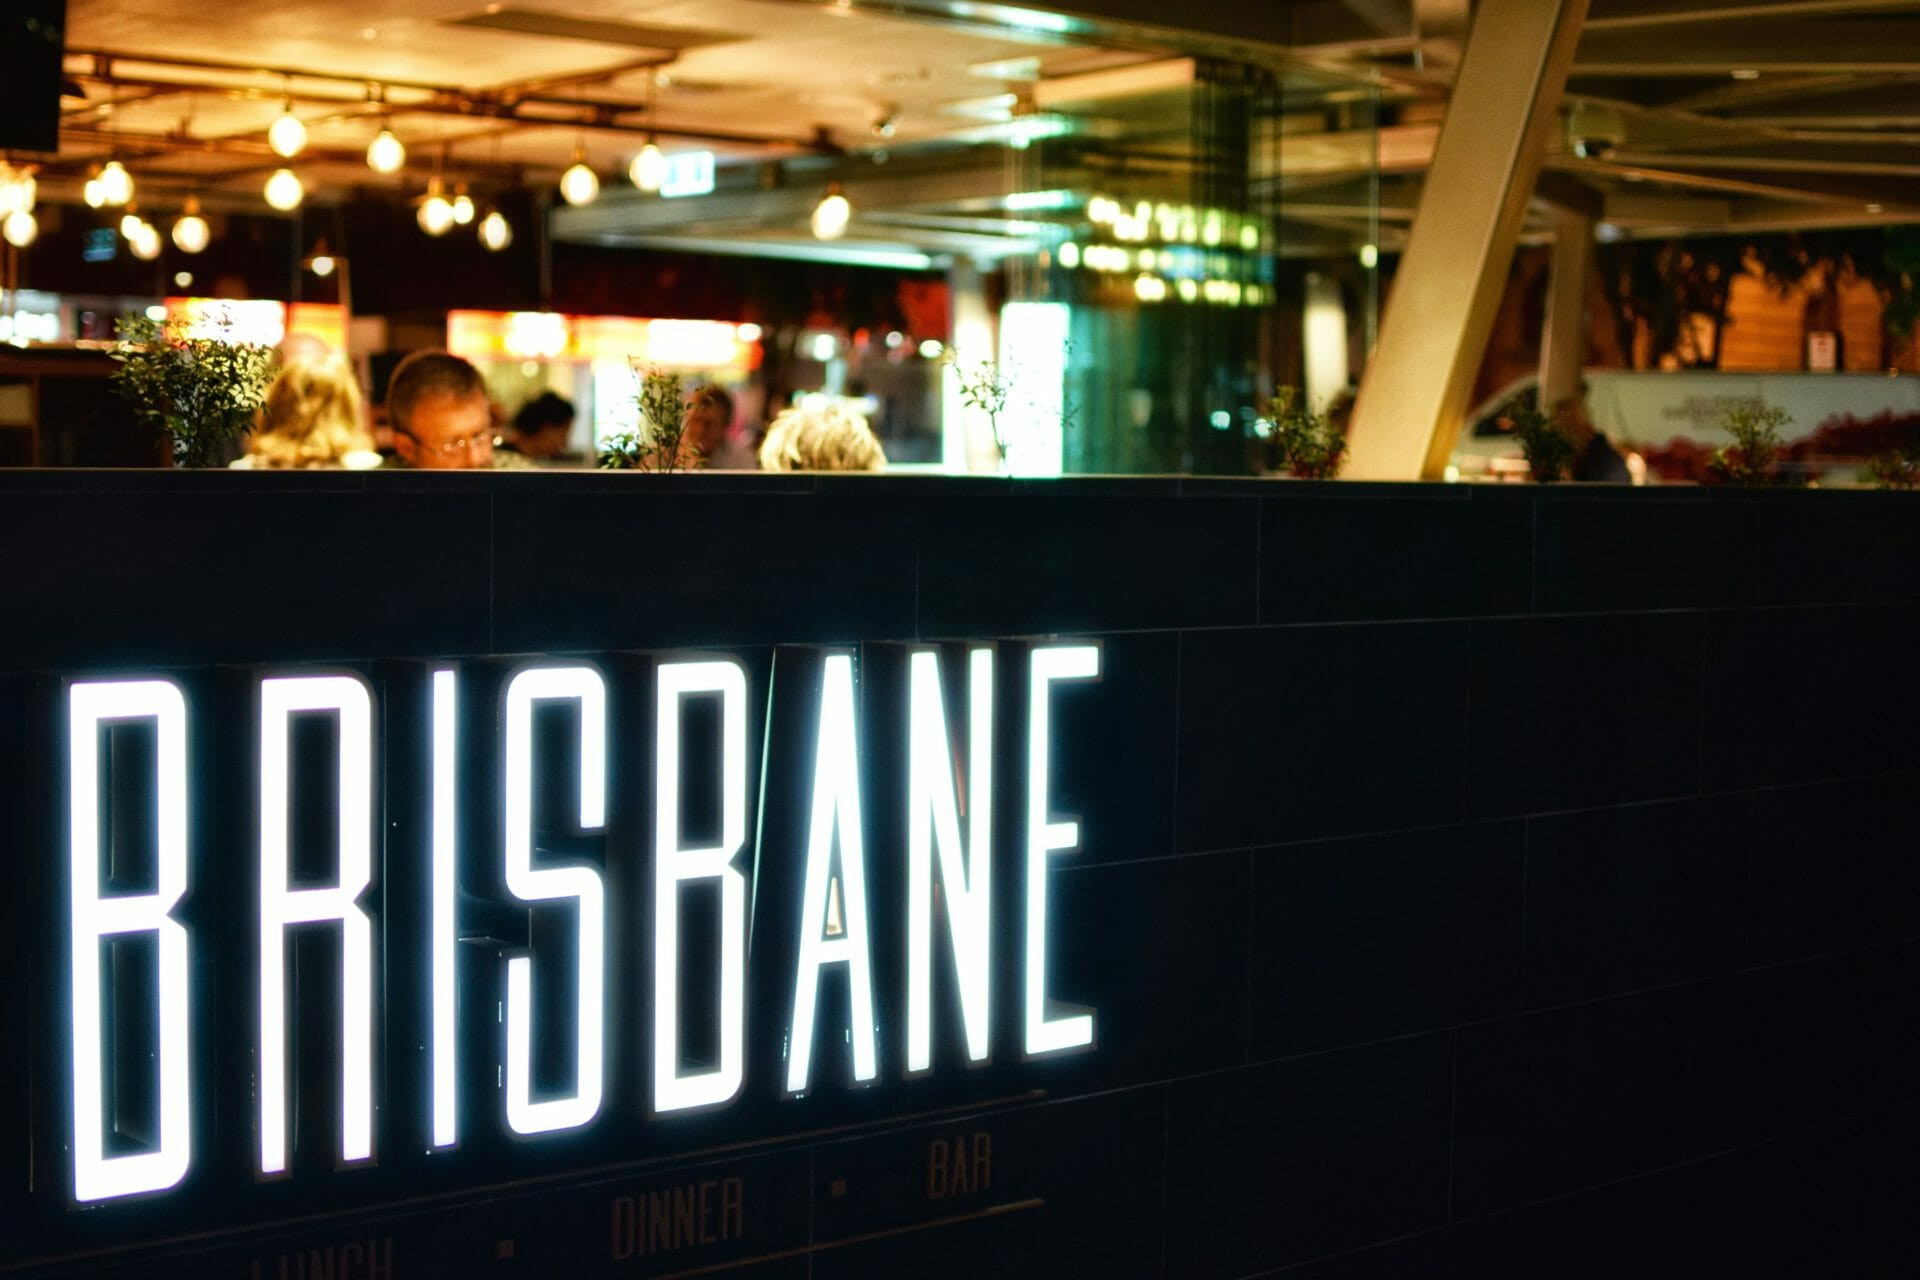 A busy restaurant in Brisbane Australia, with a light up sign that says Brisbane - a common sight when moving to Brisbane